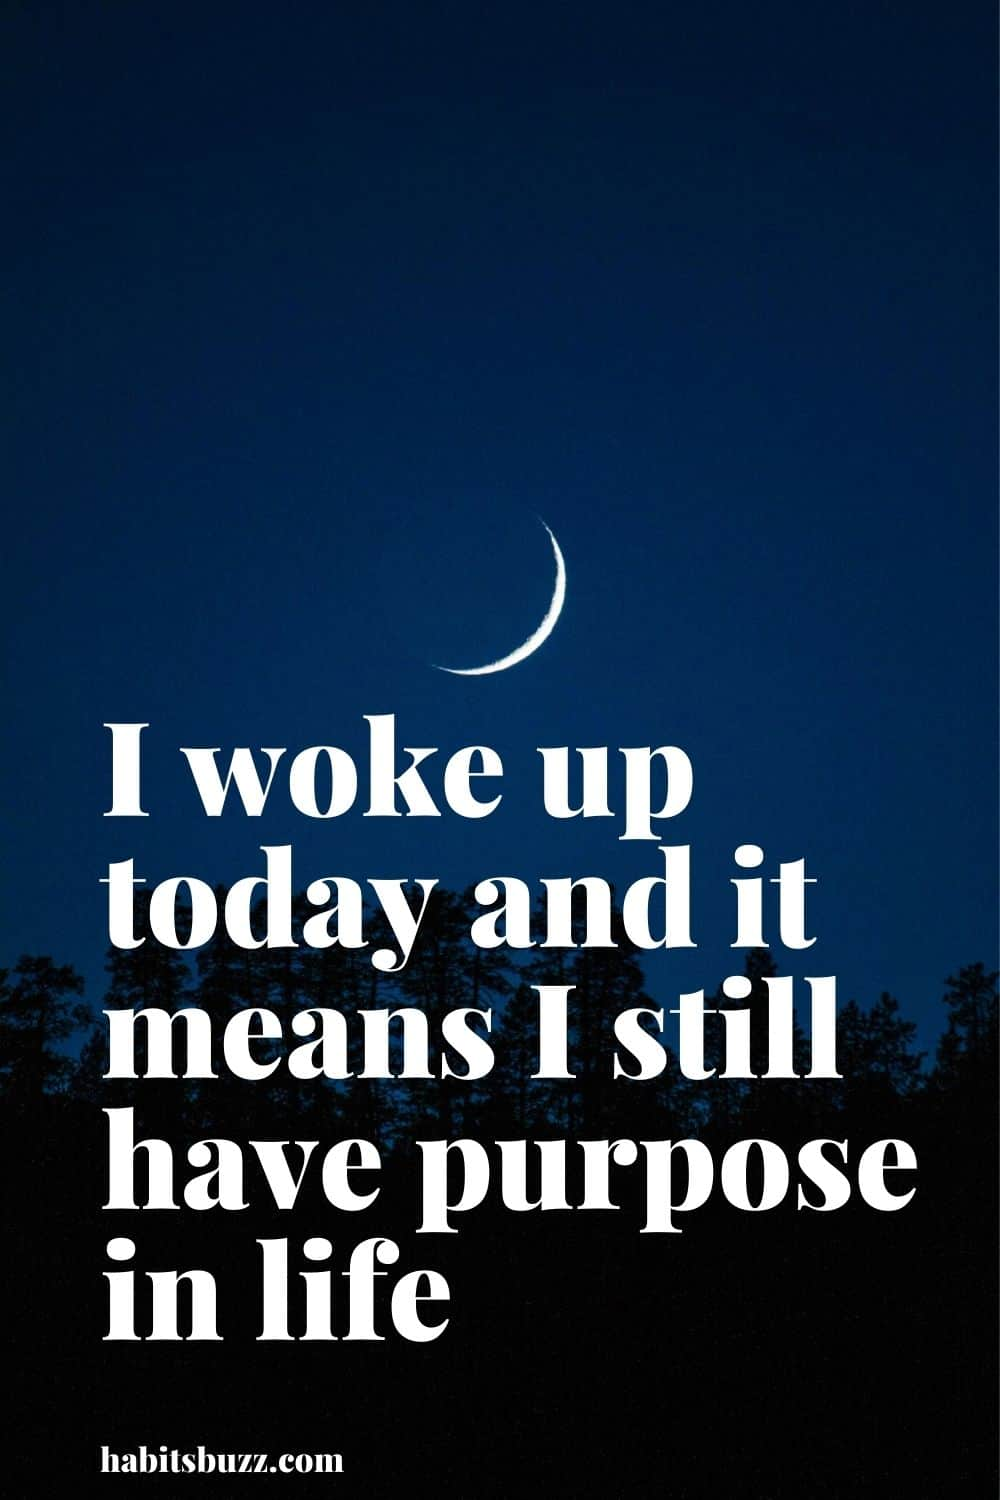 I woke up today and it means I still have purpose in life - mantras to get through bad times in life